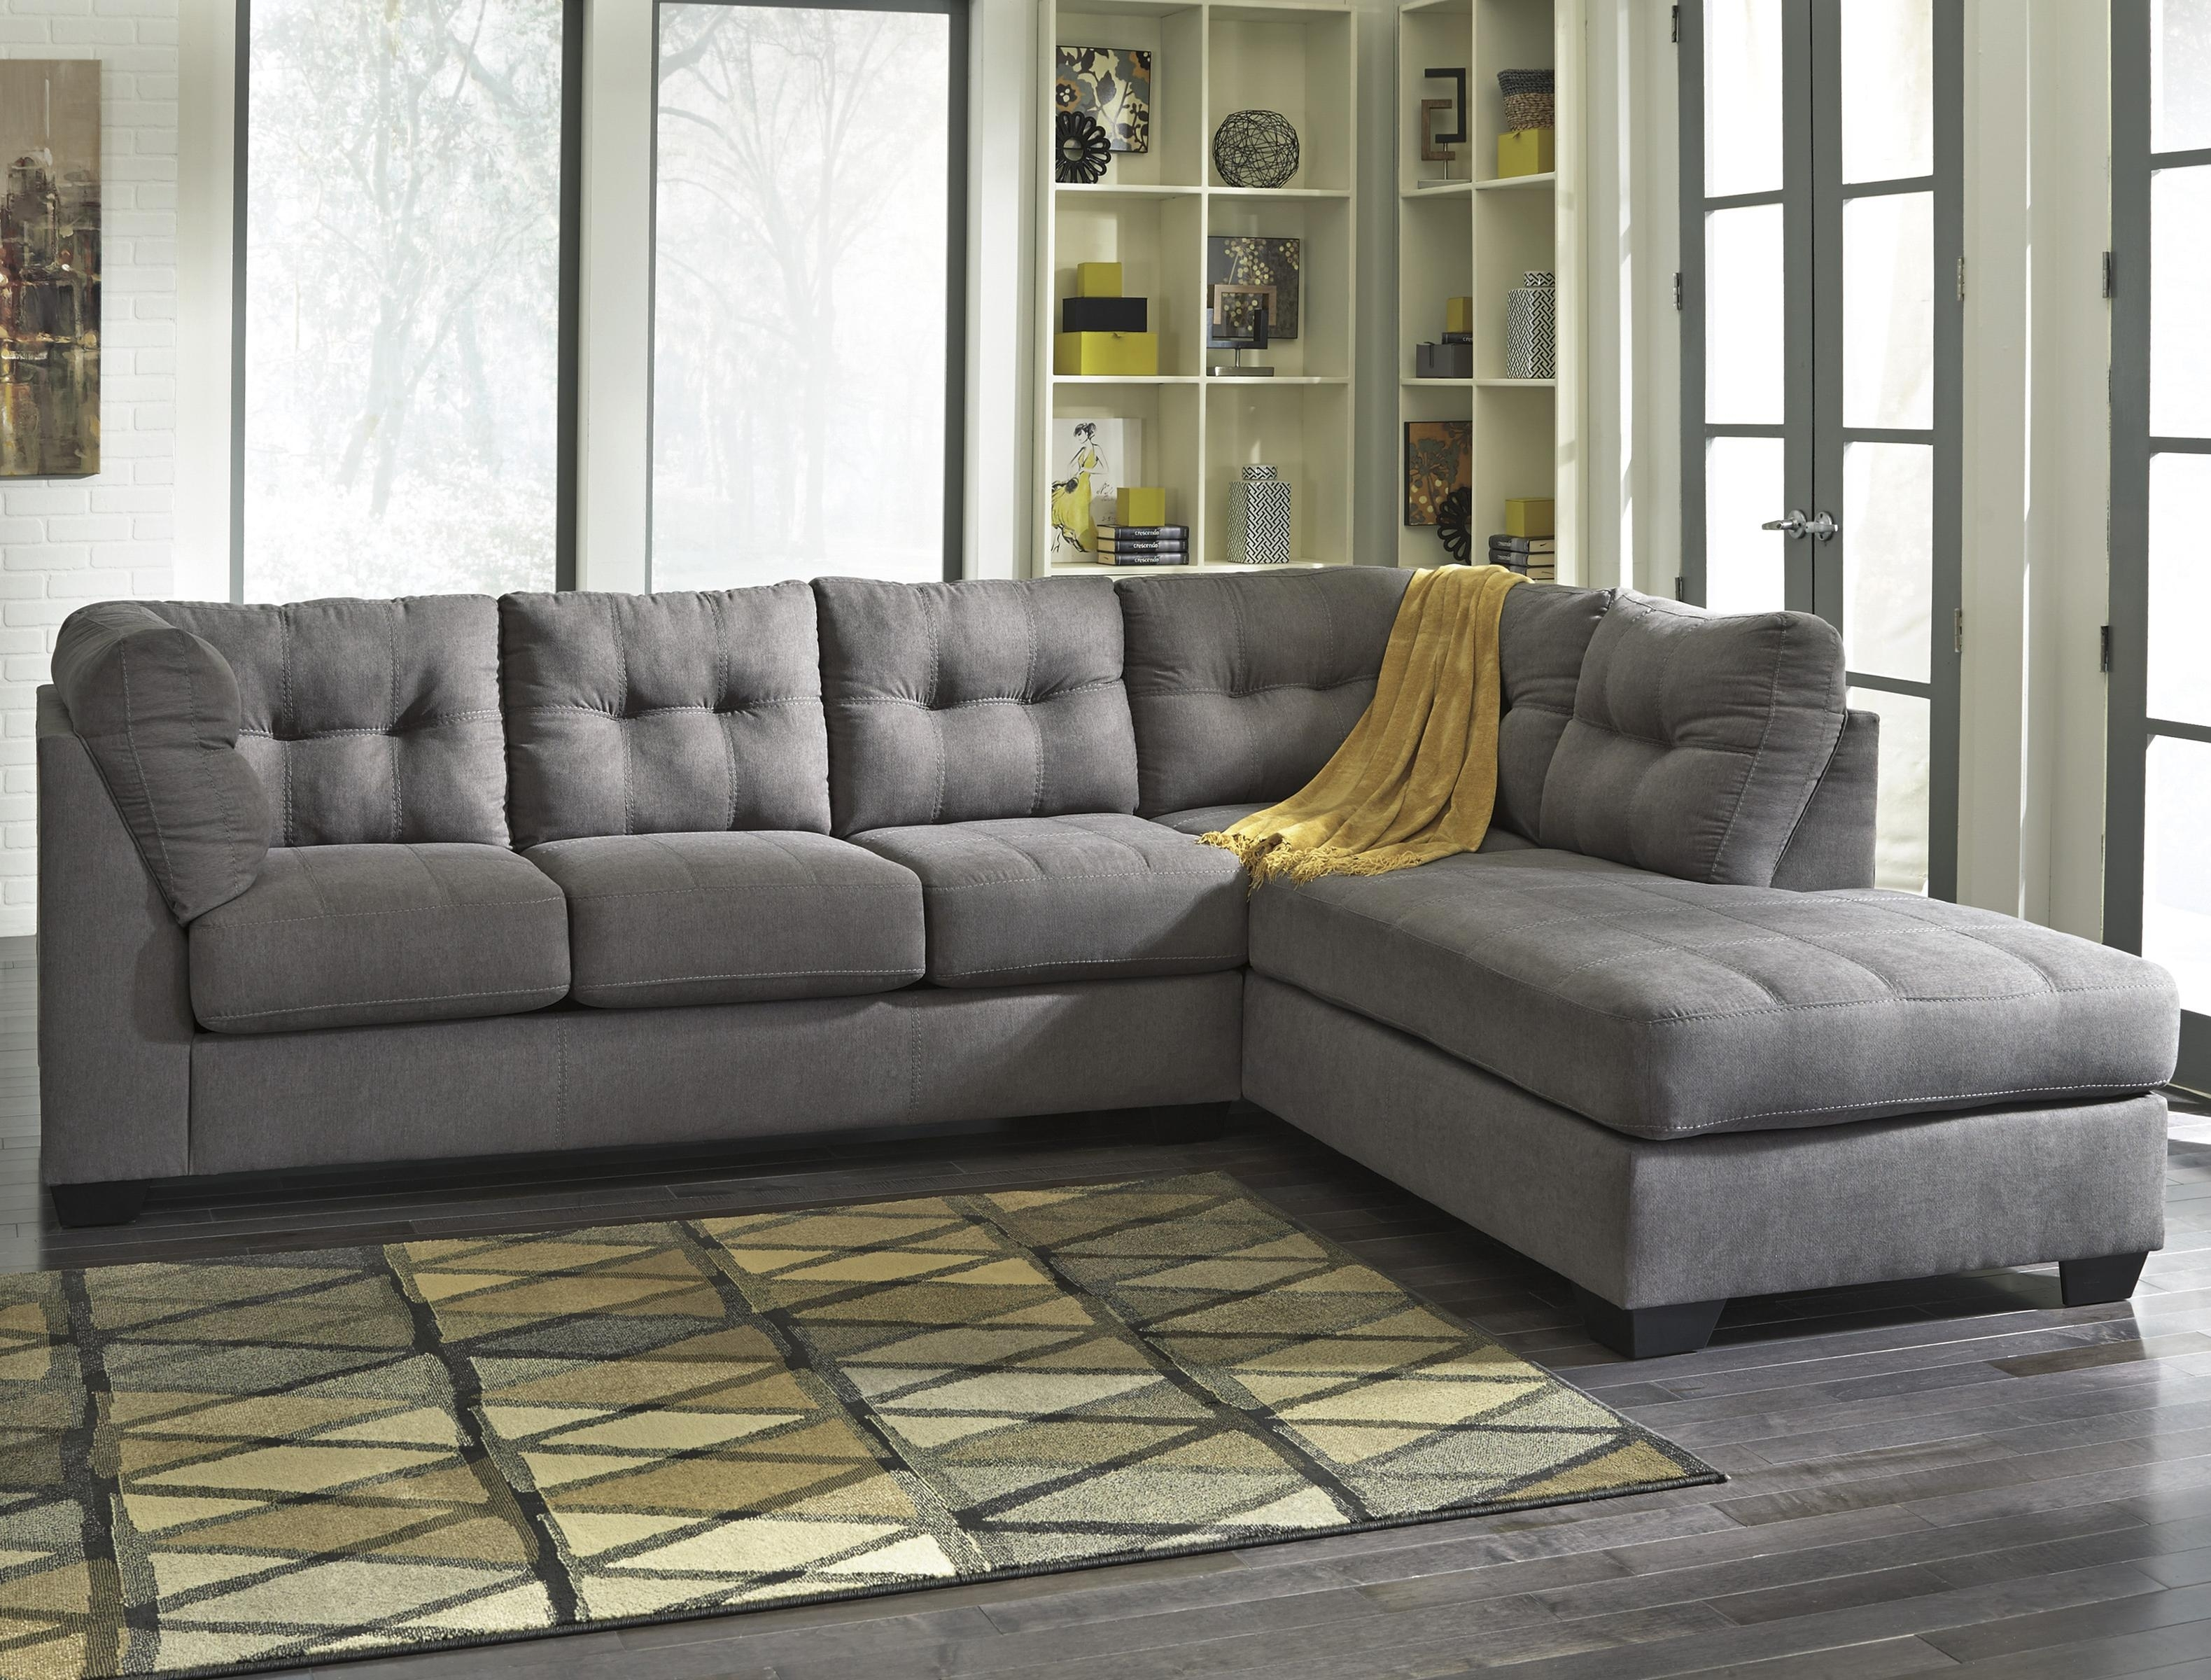 Luxury Sectional Sofas Portland Oregon 45 For Your Sectional Sofas Within Portland Oregon Sectional Sofas (View 4 of 10)